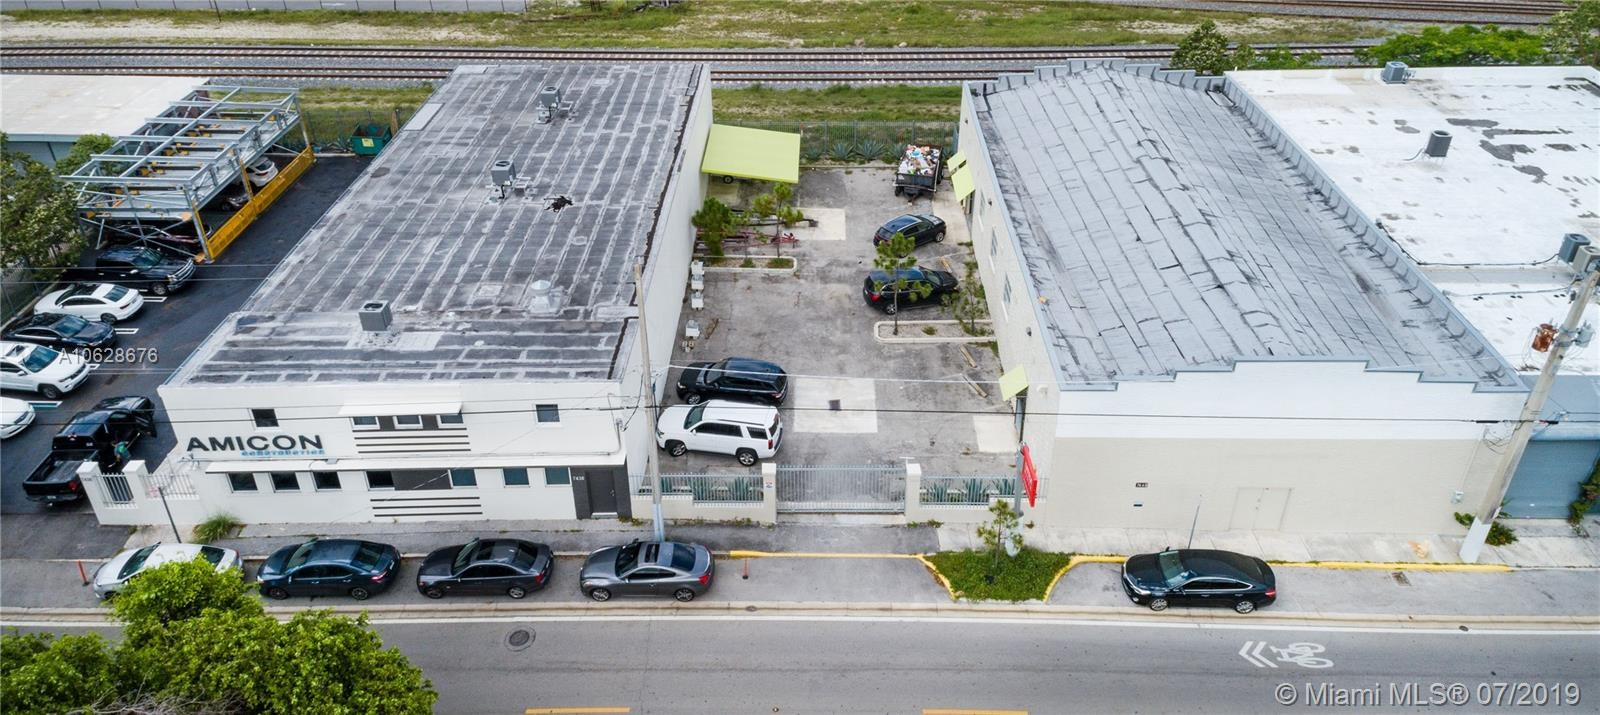 7430-7448 NE 4th Ct, Miami, FL 33138